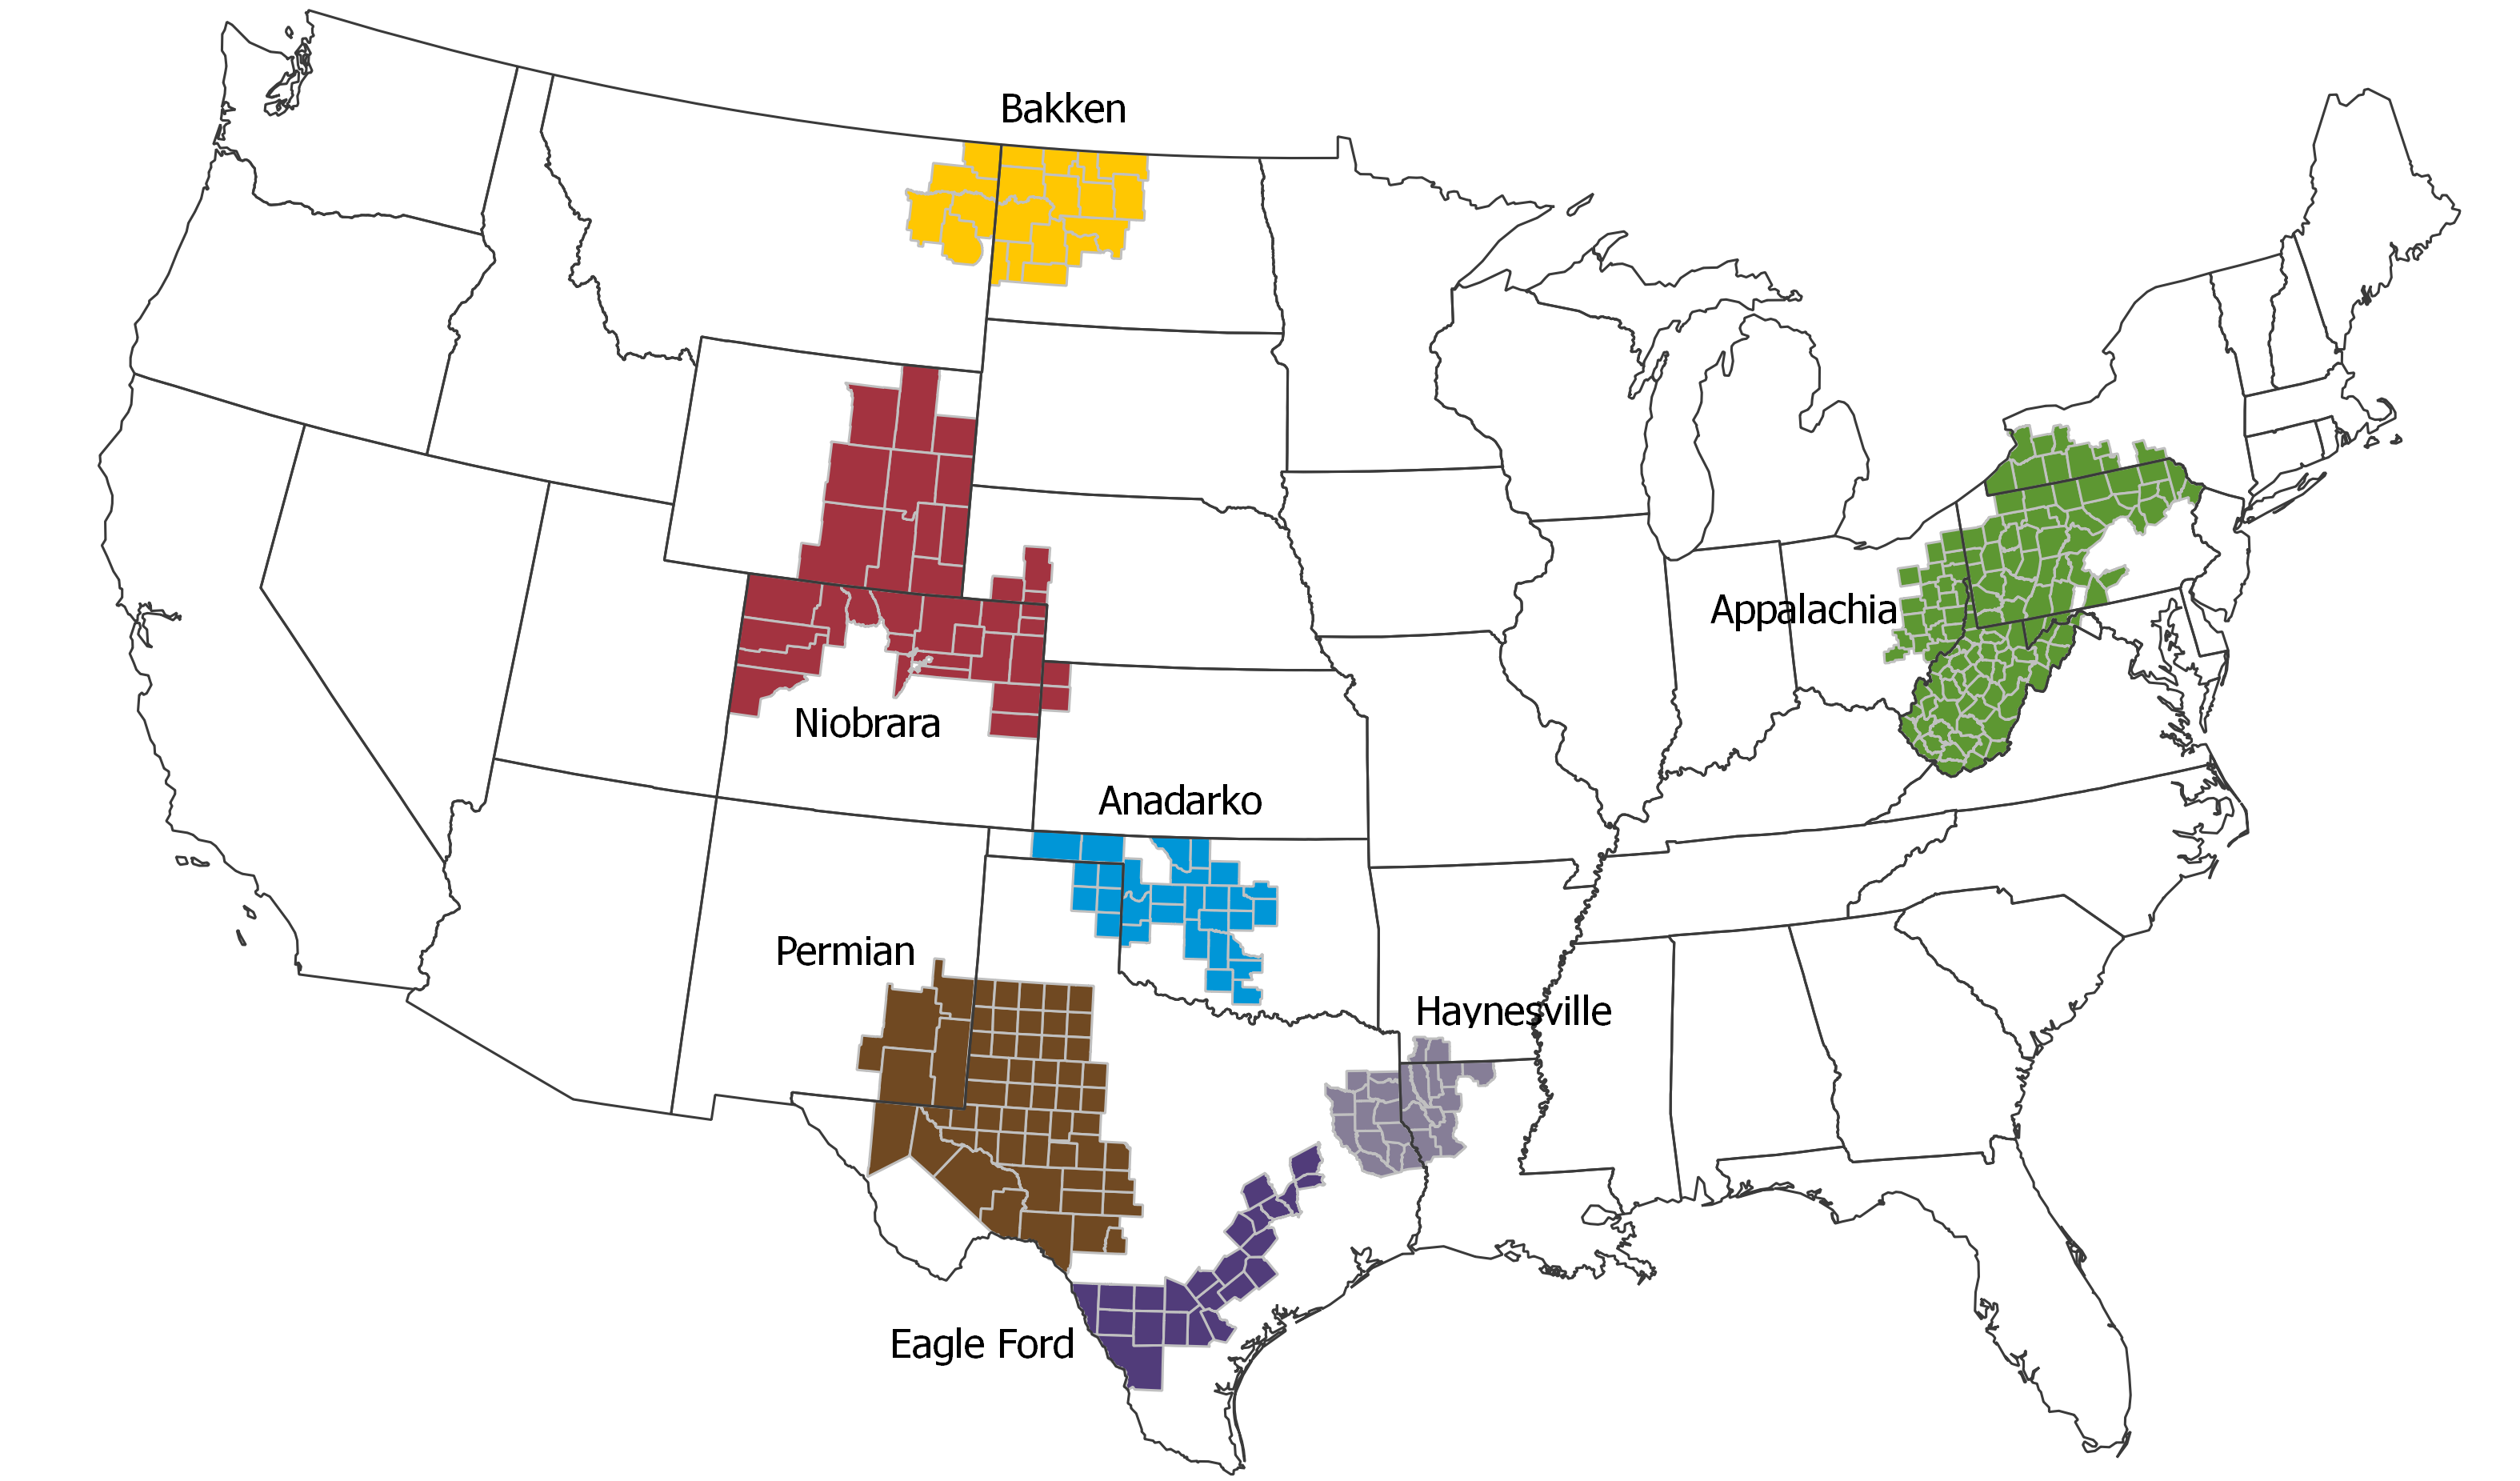 The U.S. Has Abundant Shale Gas Resources